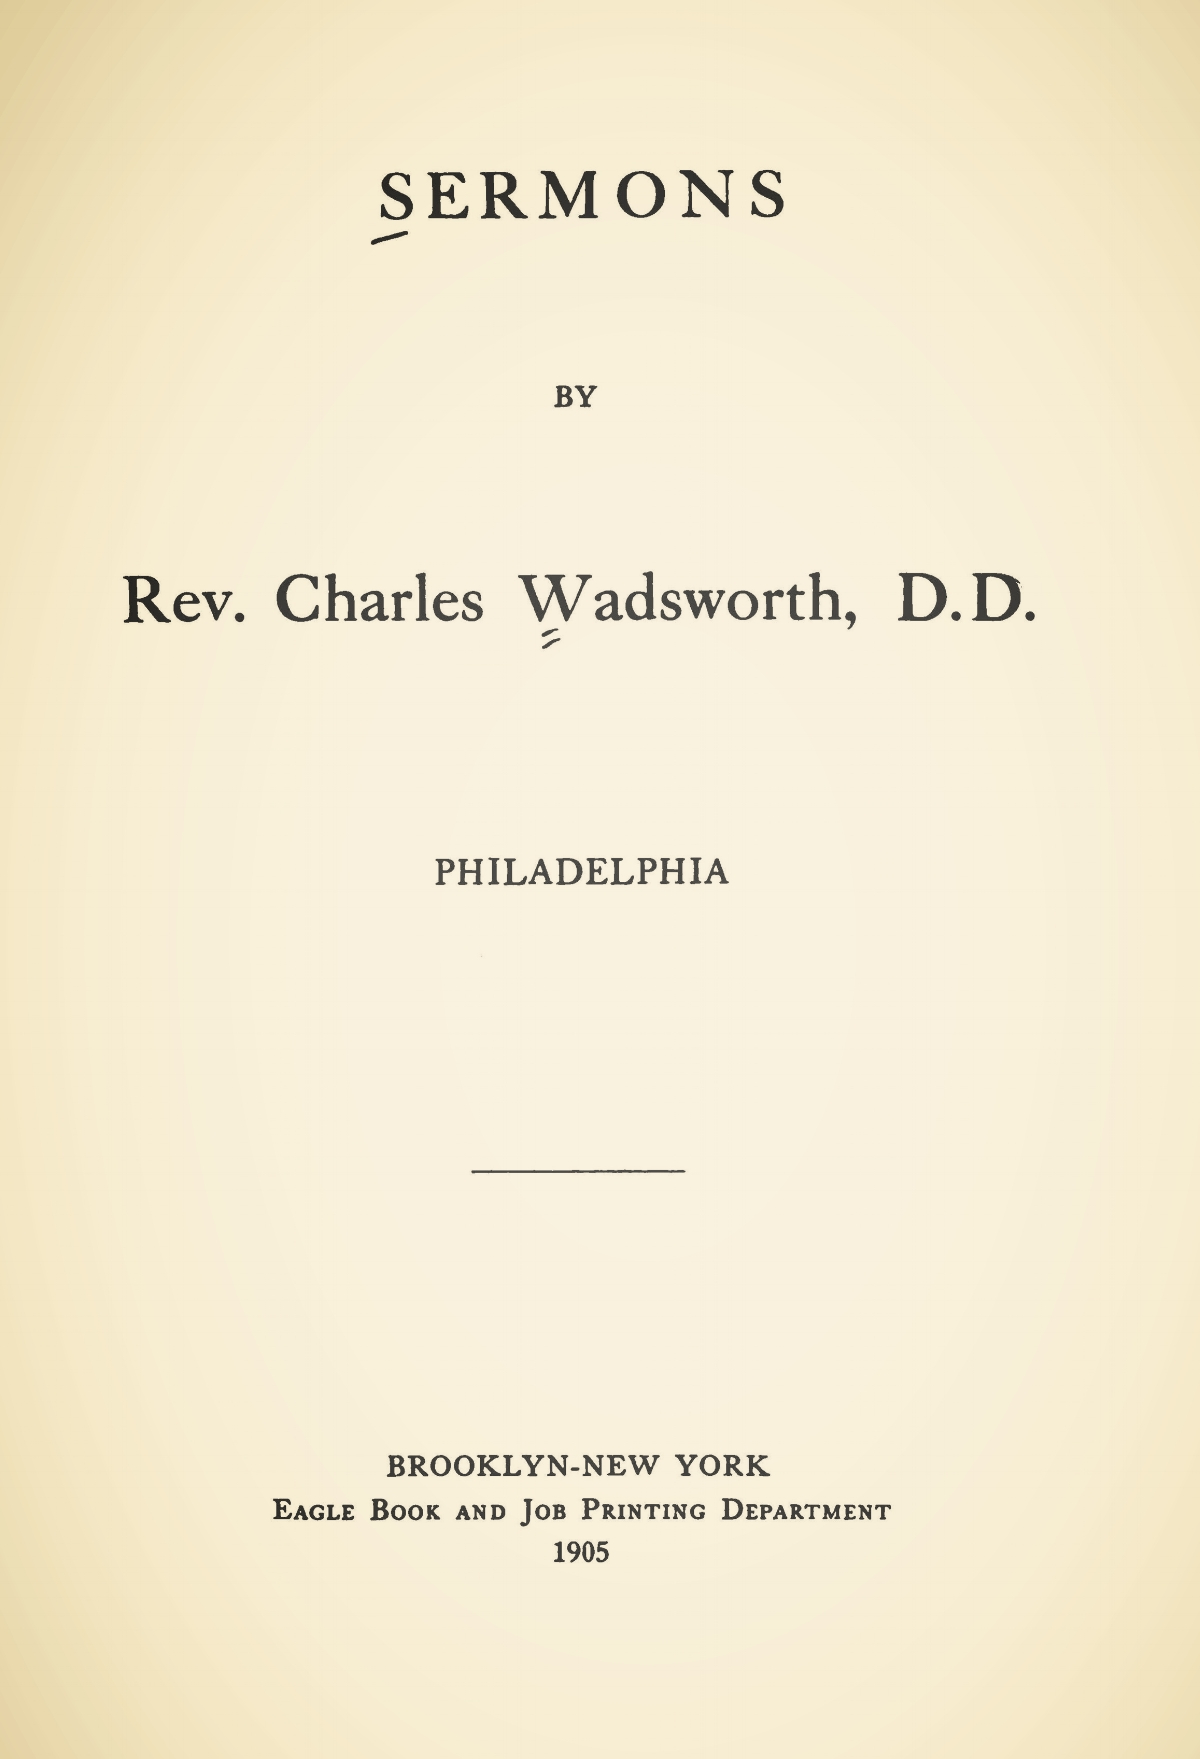 Wadsworth, Charles, Sermons 1905 Title Page.jpg